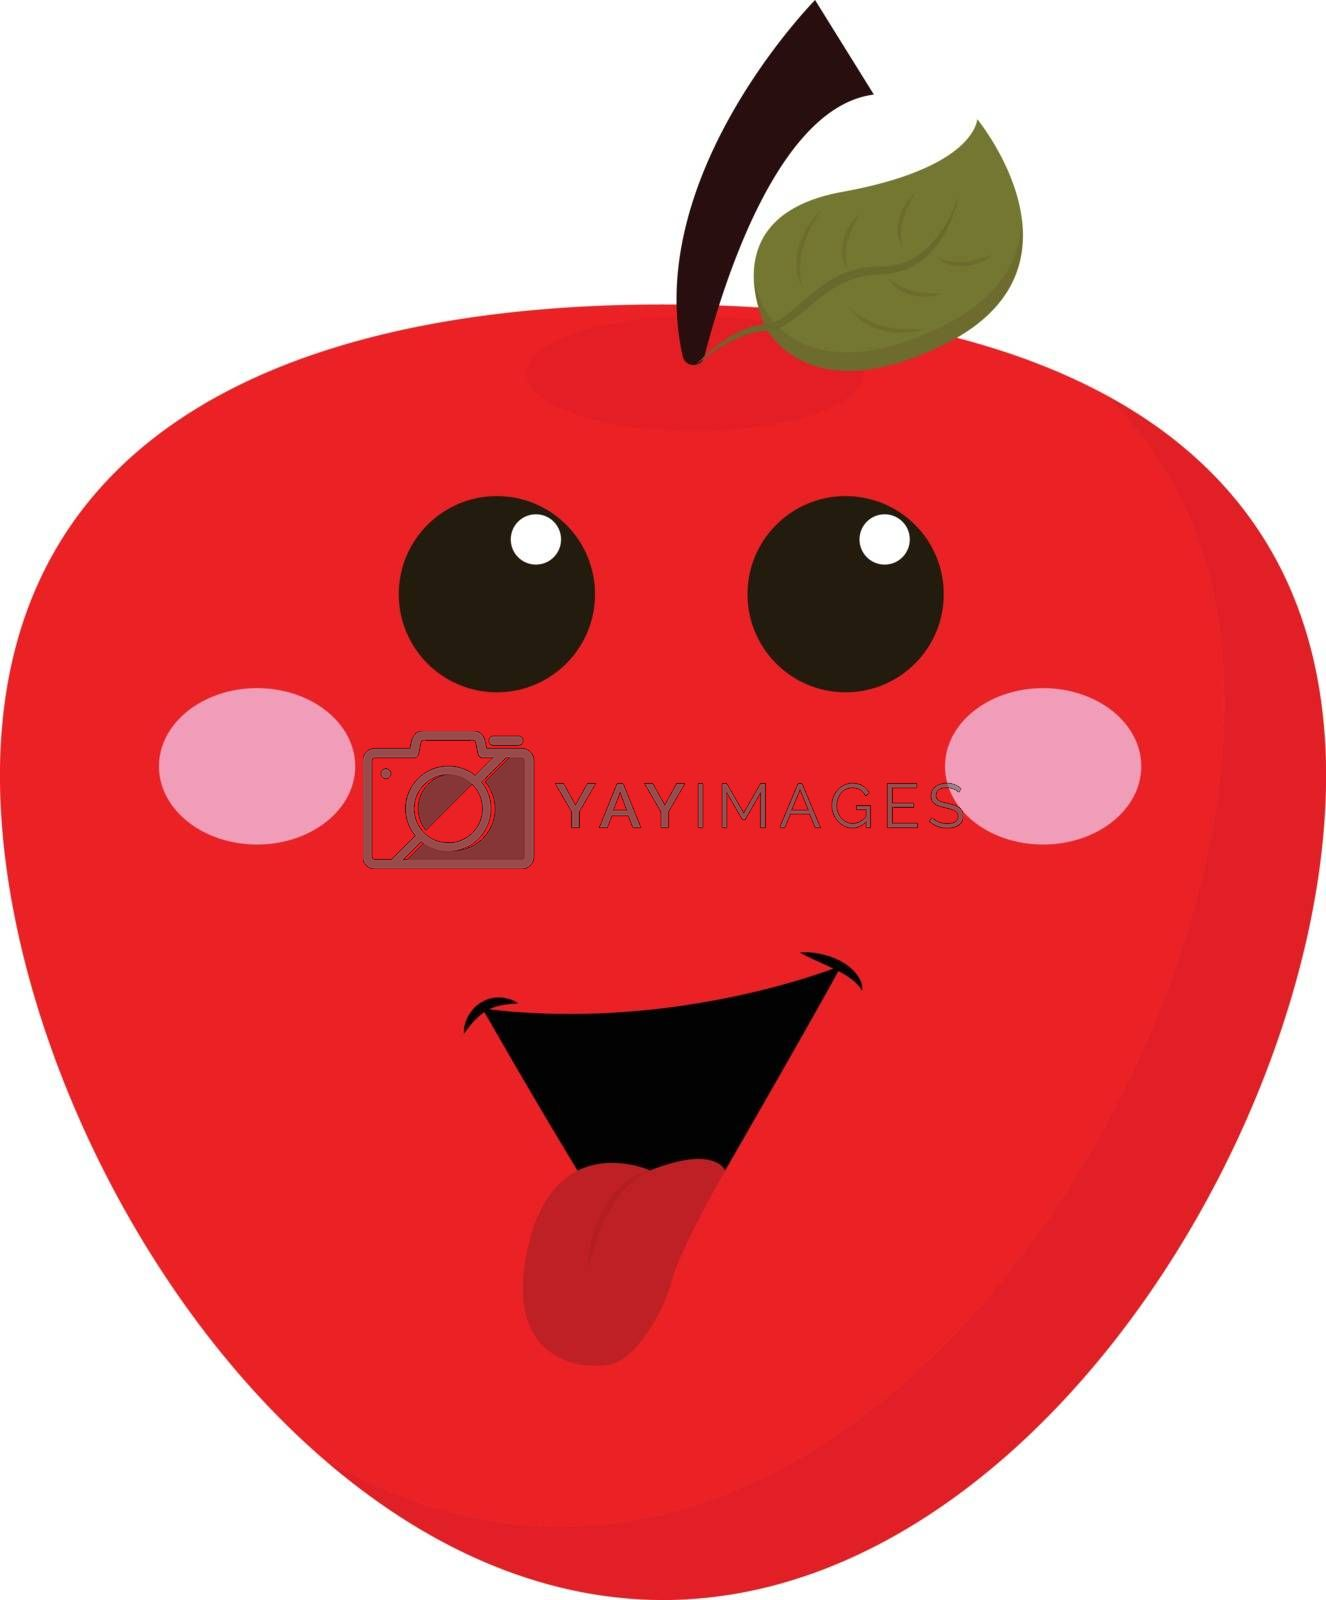 Royalty free image of Happy Apple , vector or color illustration by Morphart